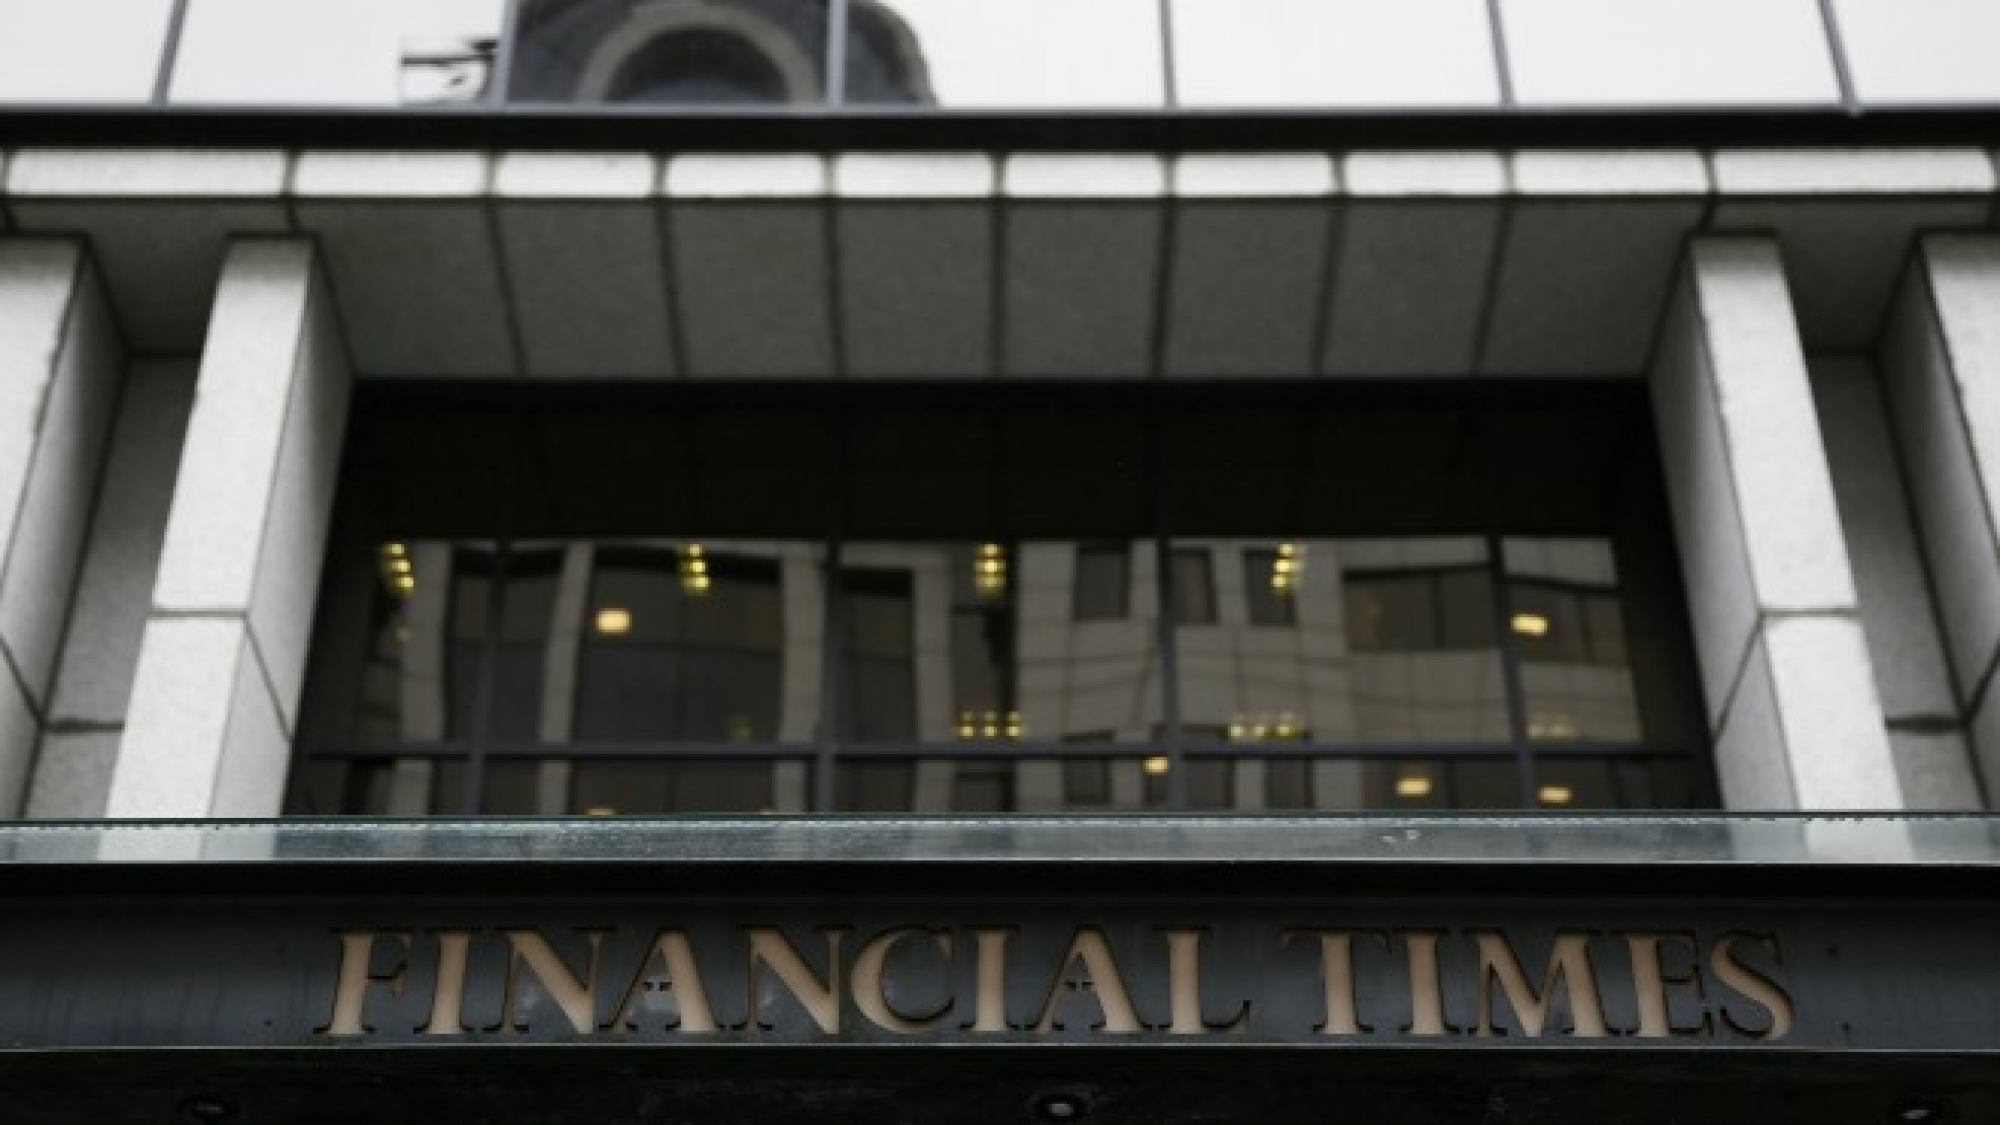 The Financial Times opens a technology office in Sofia